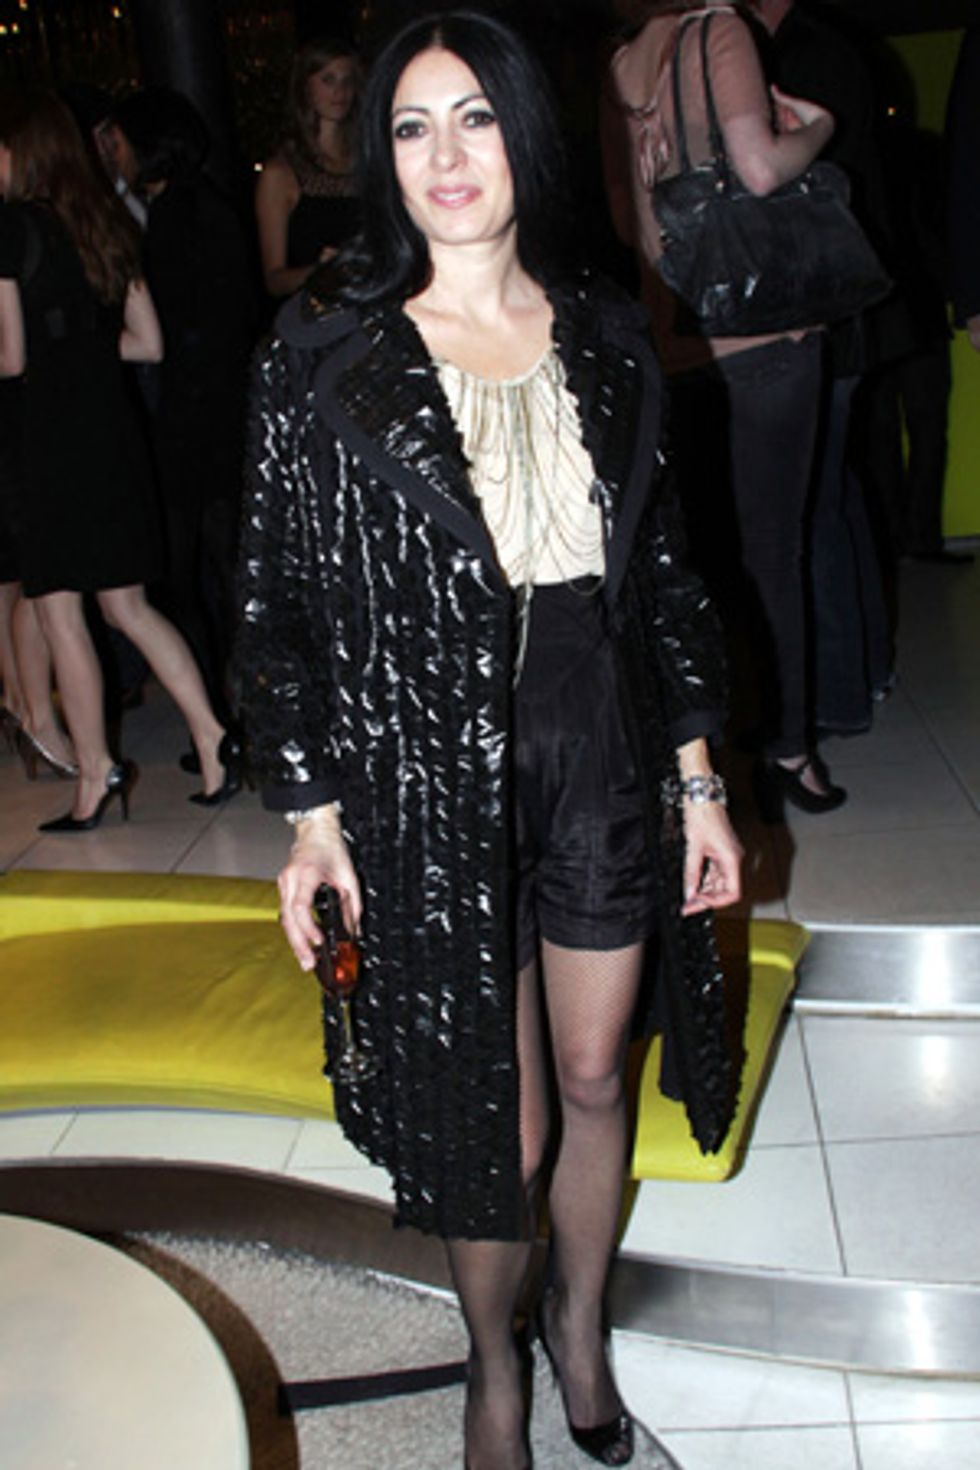 About Last Night... Catherine Malandrino Hosts Party for New Season of Make Me a Supermodel